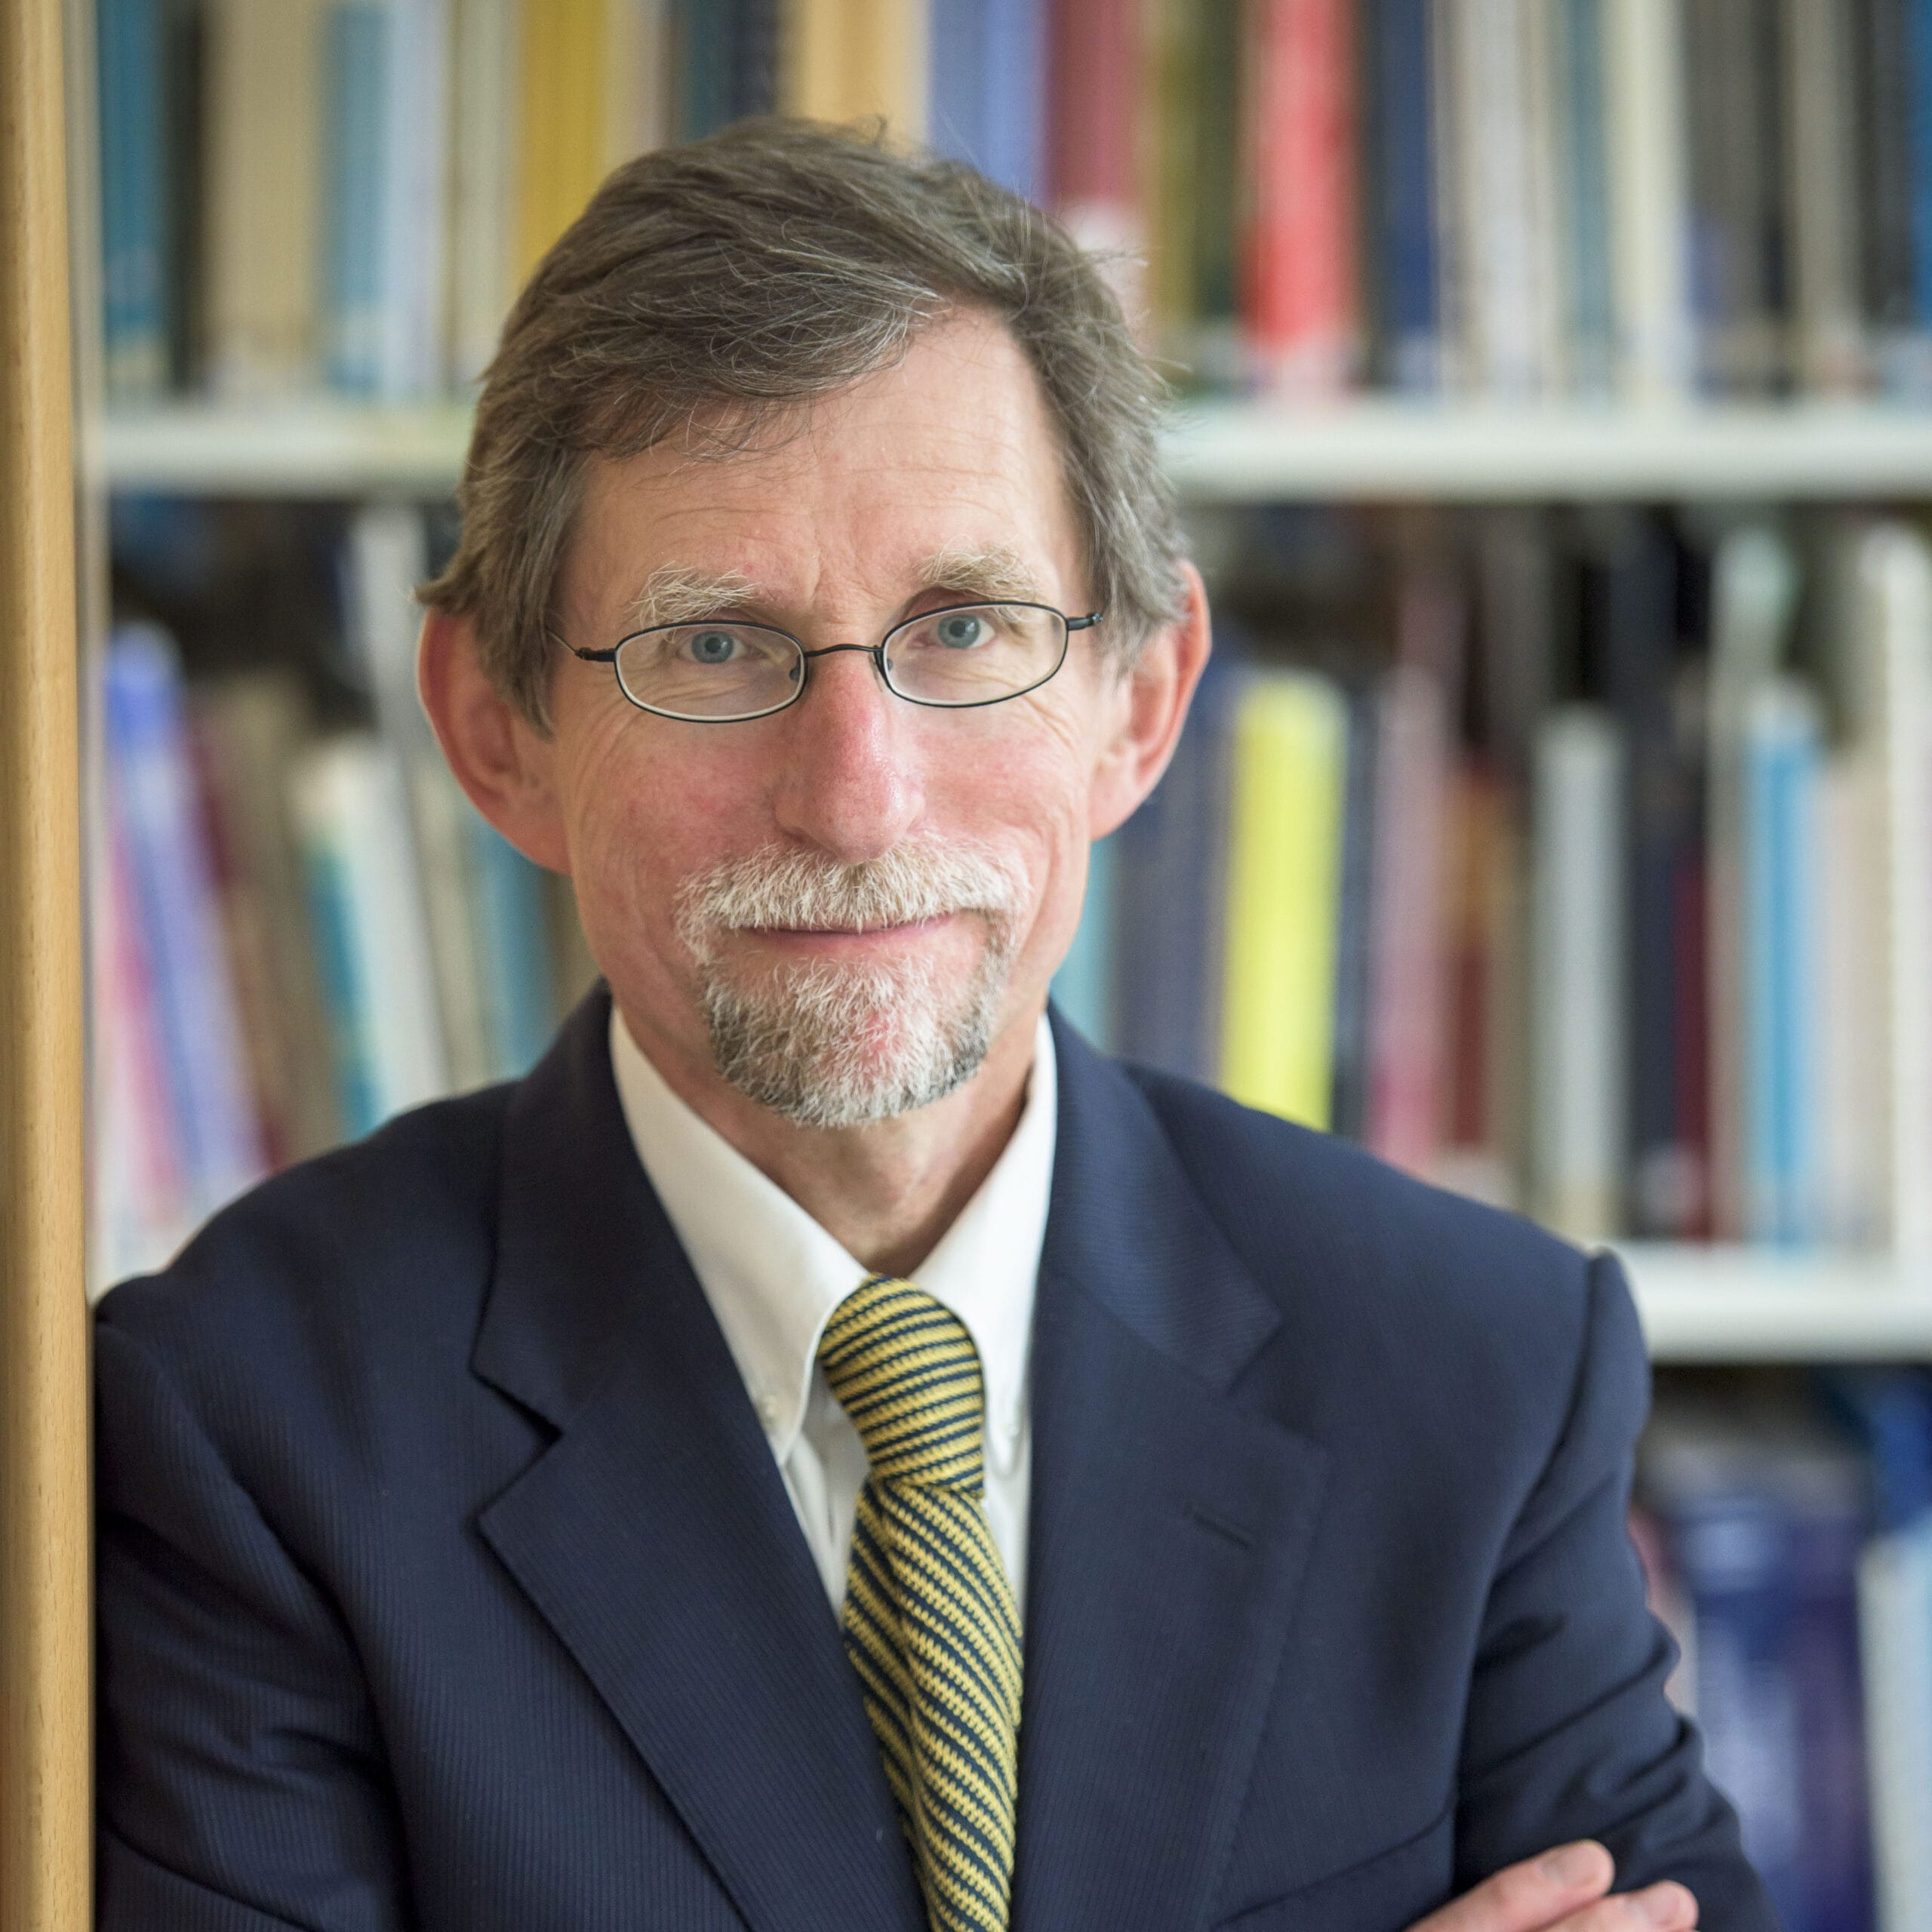 Picture of Tim Oates at Moller Institute